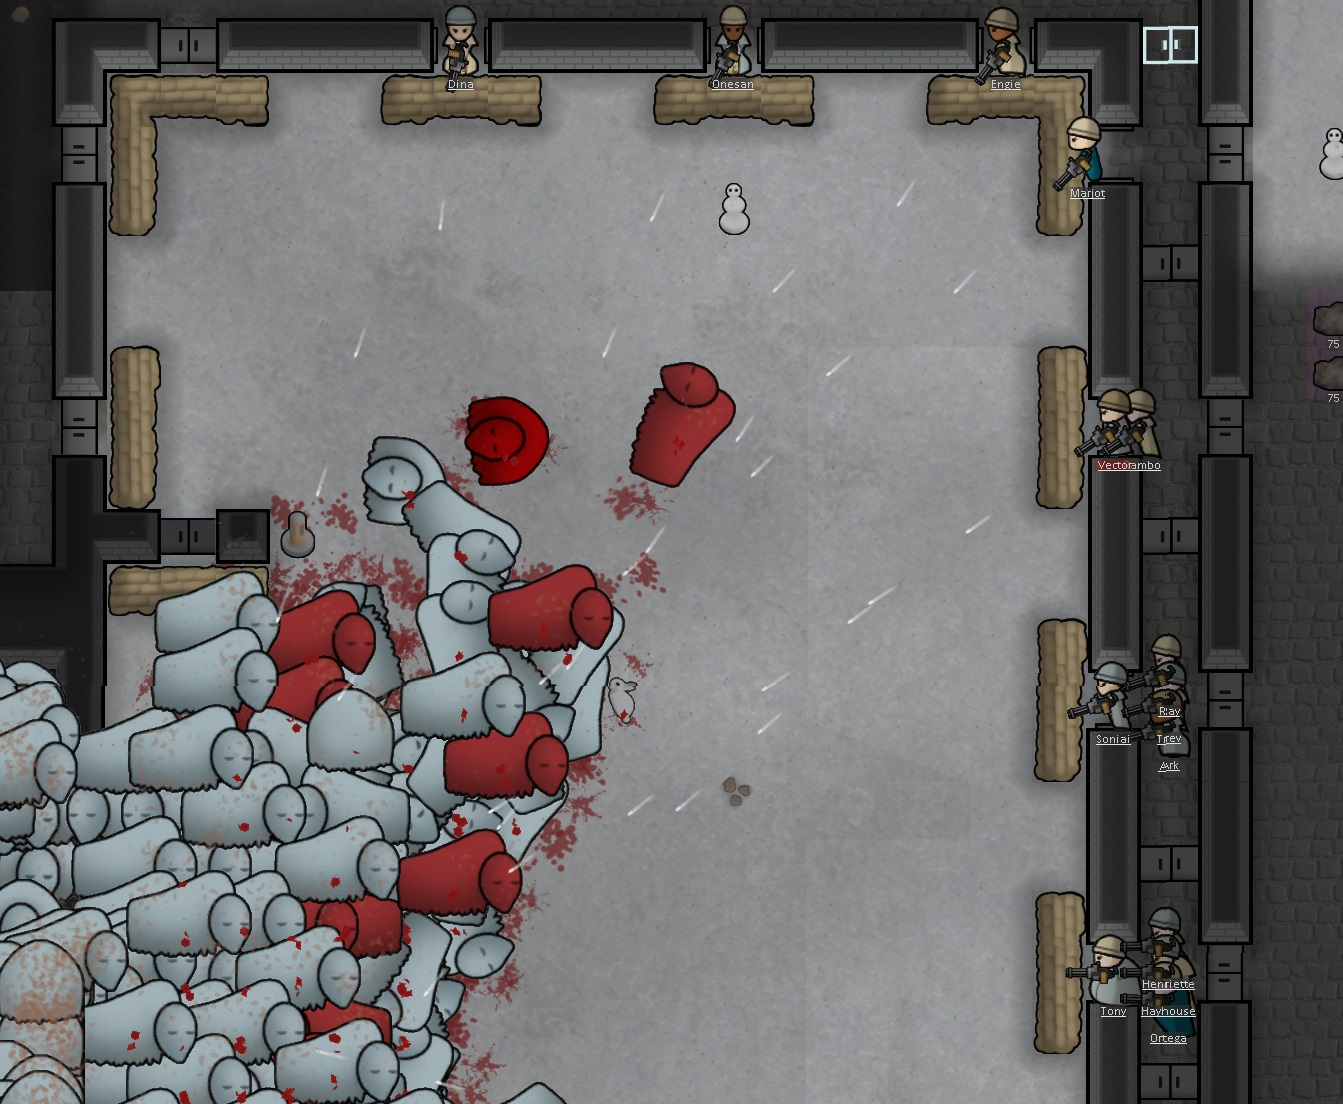 Top 5 Best Rimworld Weapons And What They're Good For